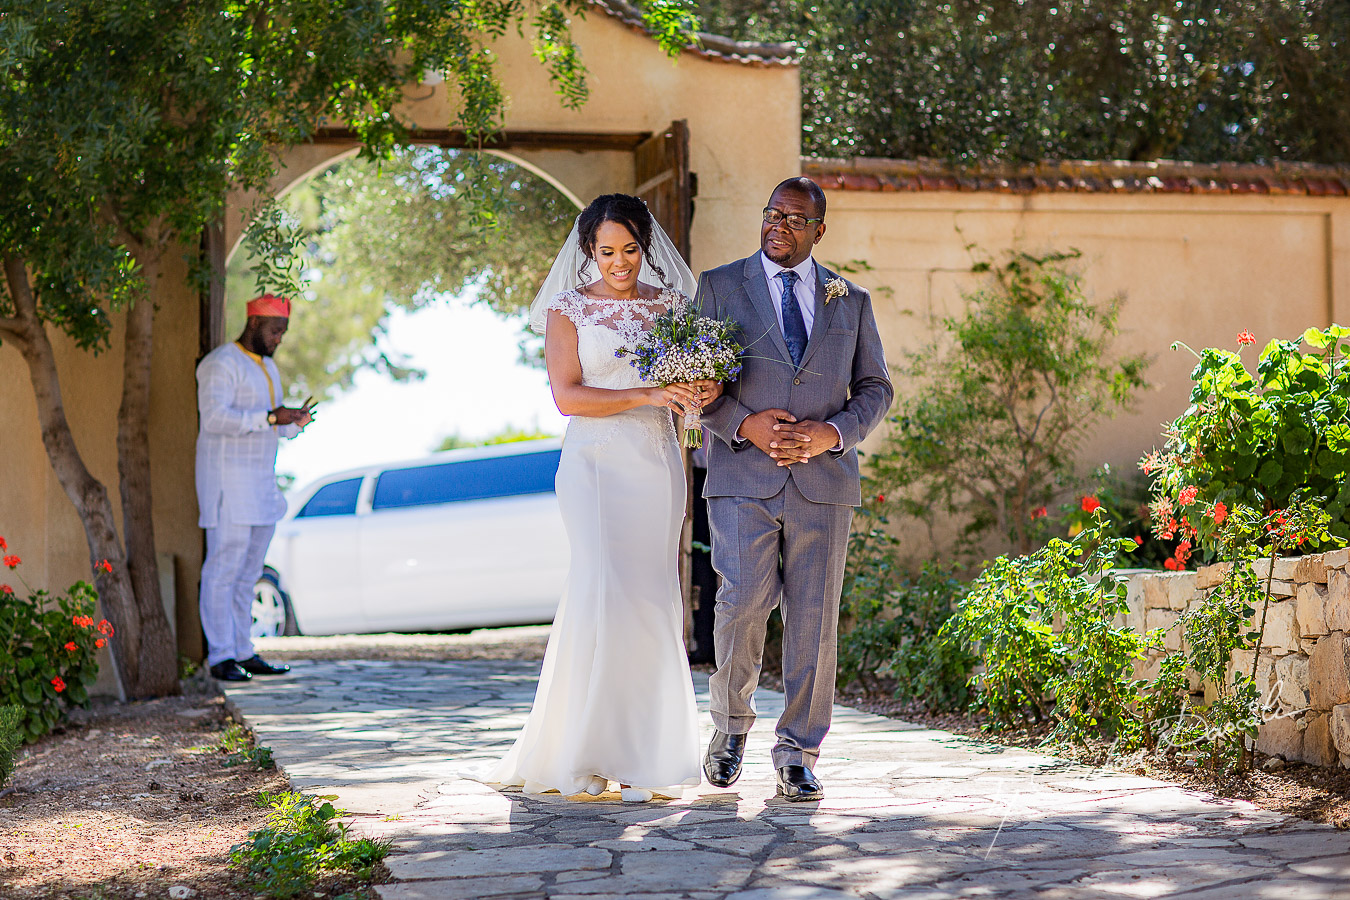 Emotional moment with the bride and her father captured at a wedding at Minthis Hills in Cyprus, by Cristian Dascalu.